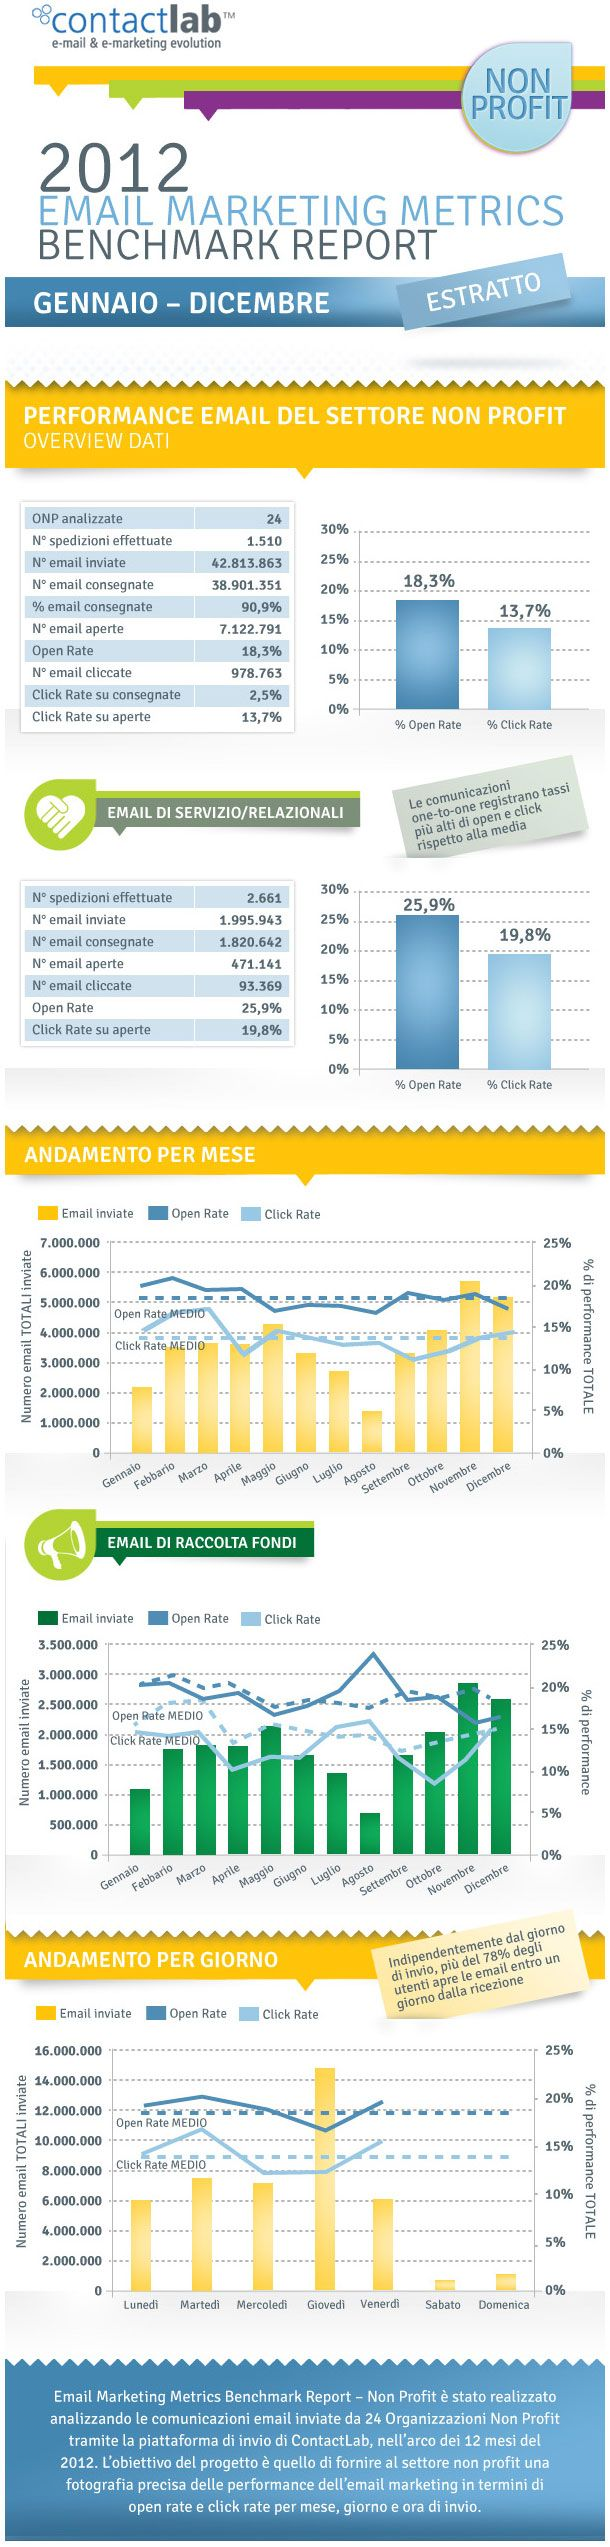 Performance-email-marketing-nel-non-profit---Benchmark-ContactLab